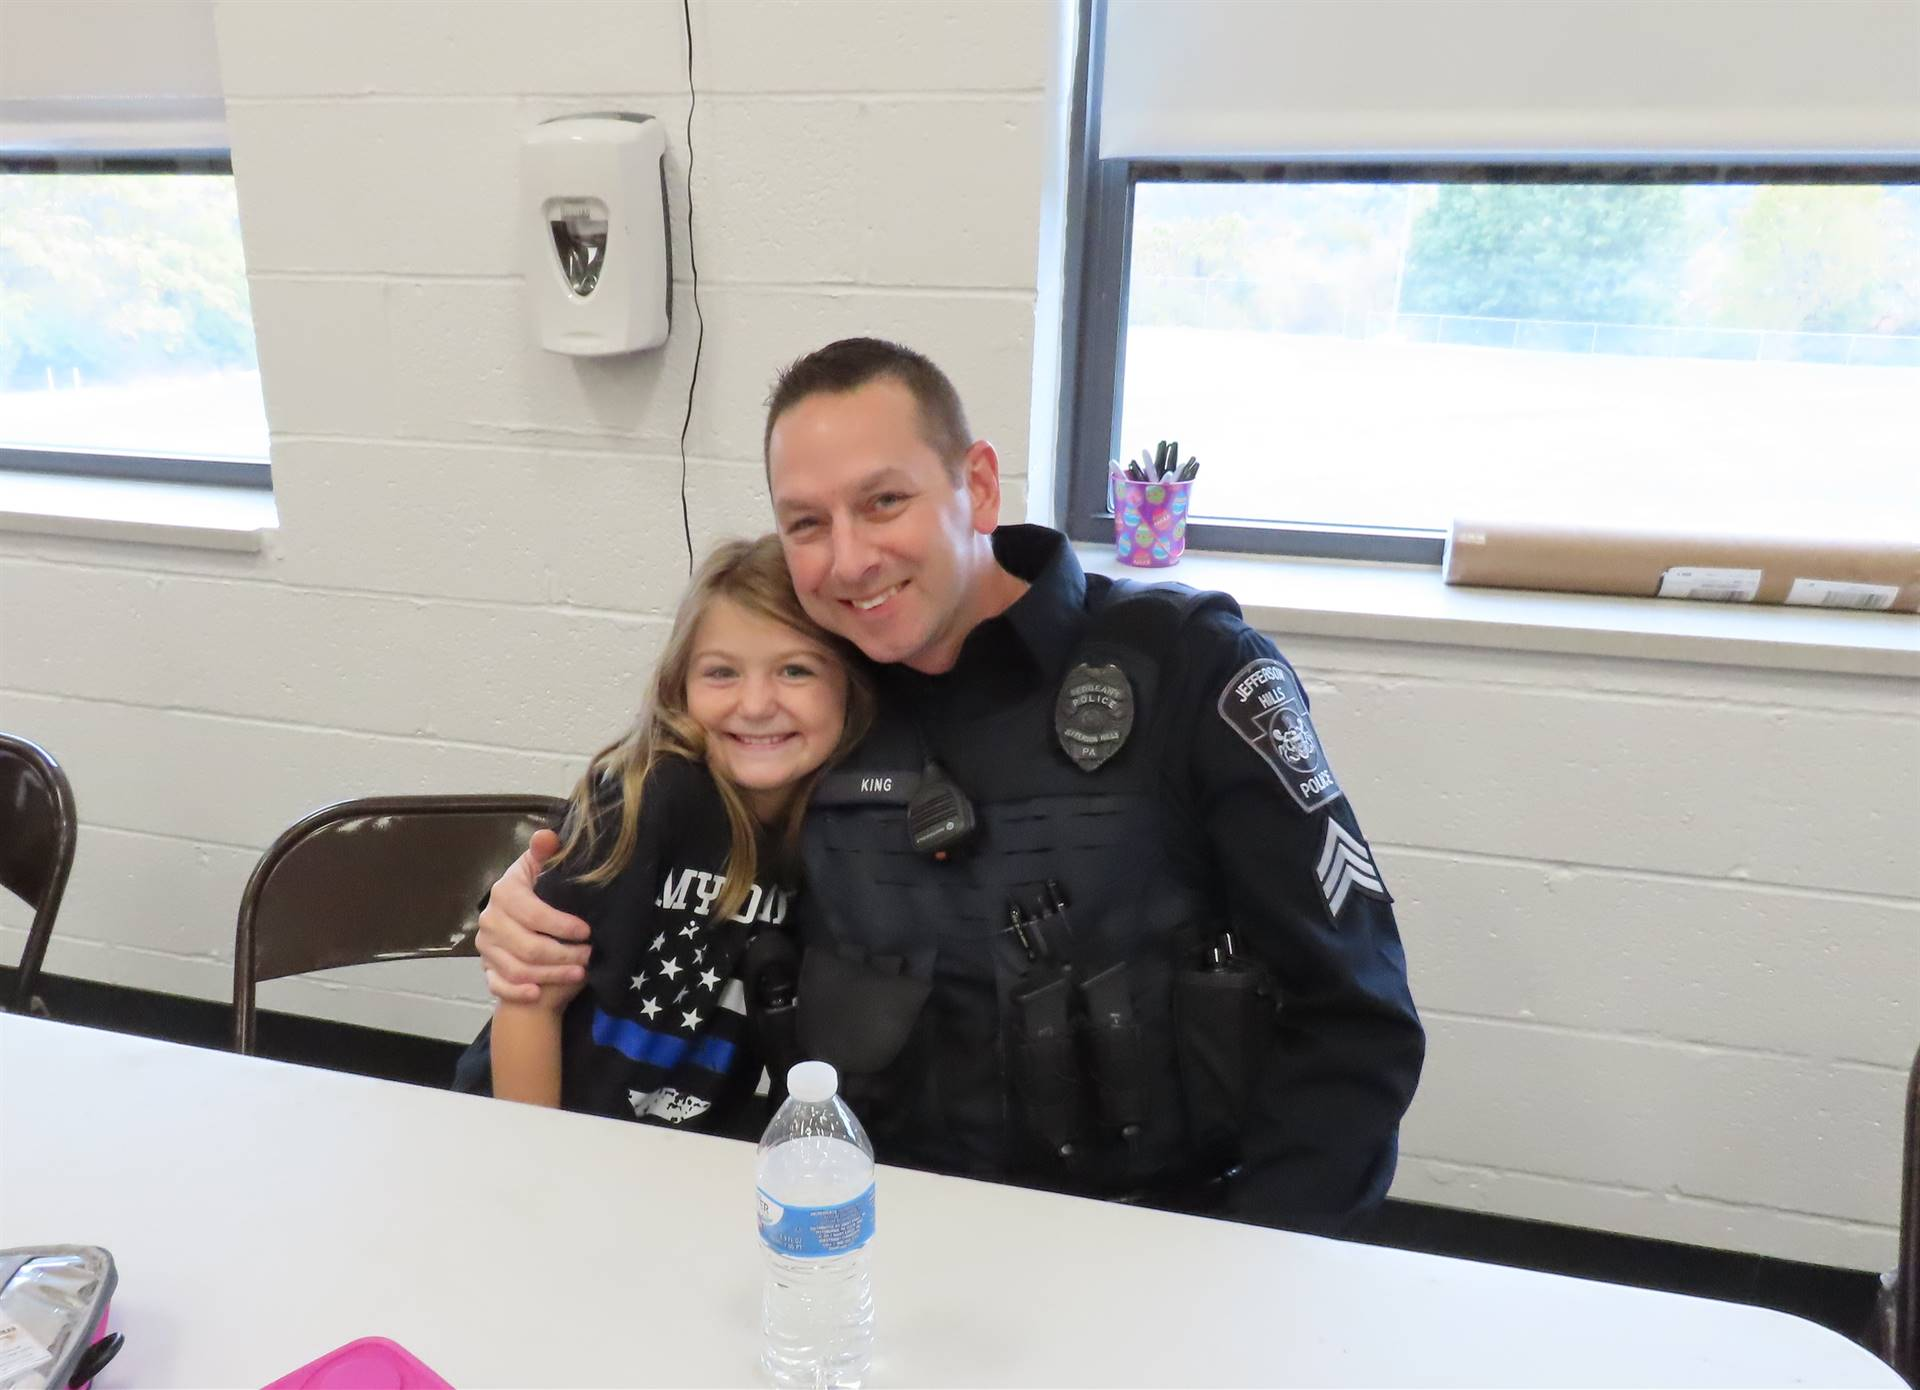 Police officer and daughter